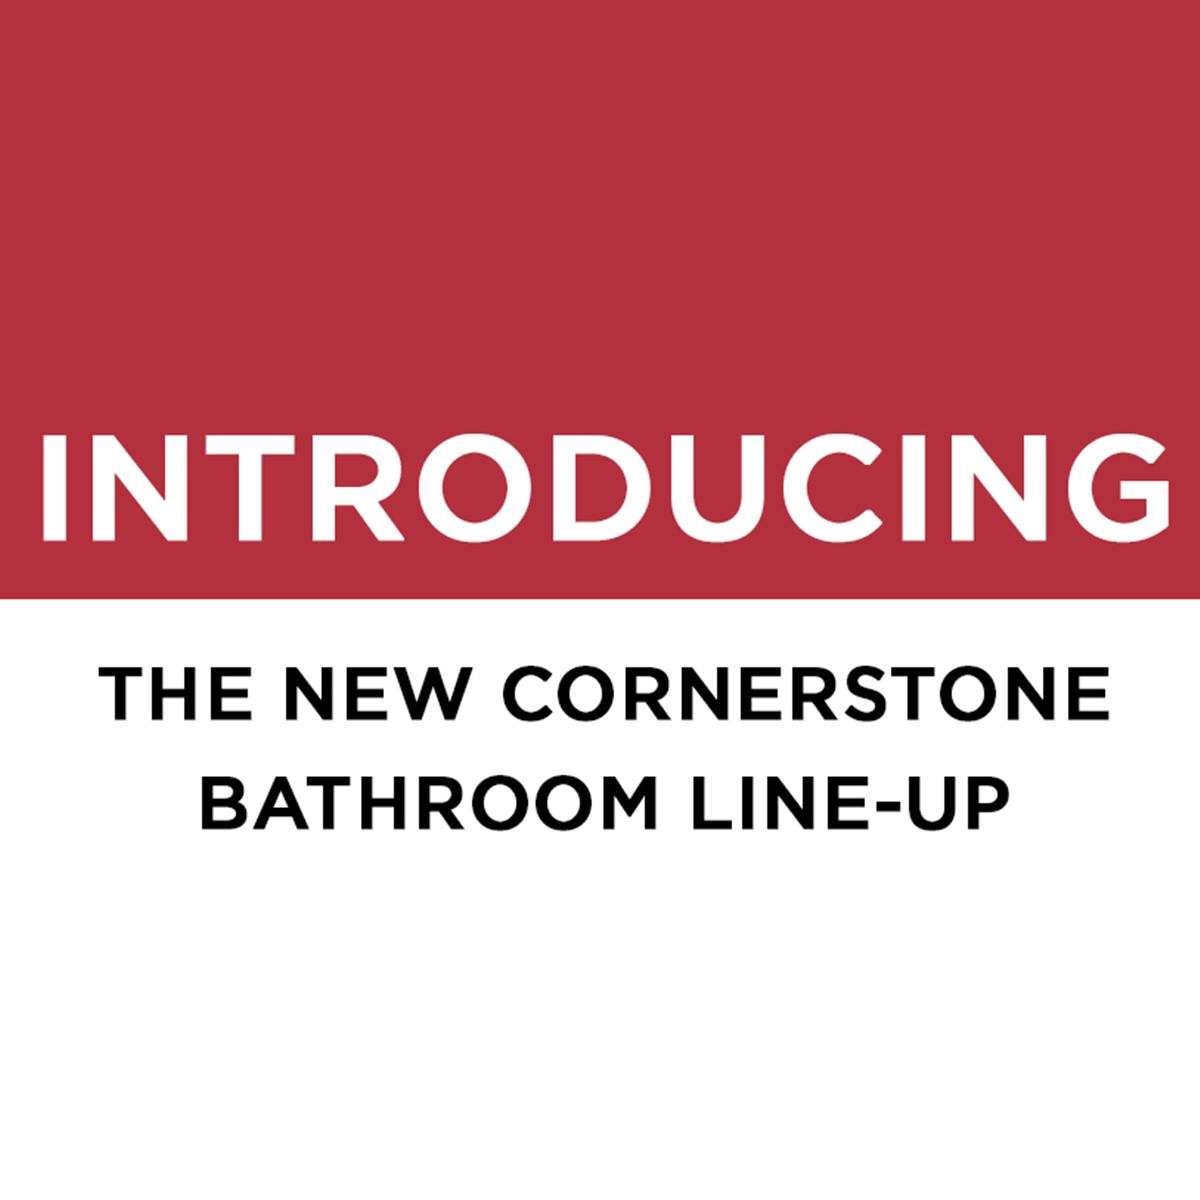 Introducing The New Cornerstone Bathroom Line-Up